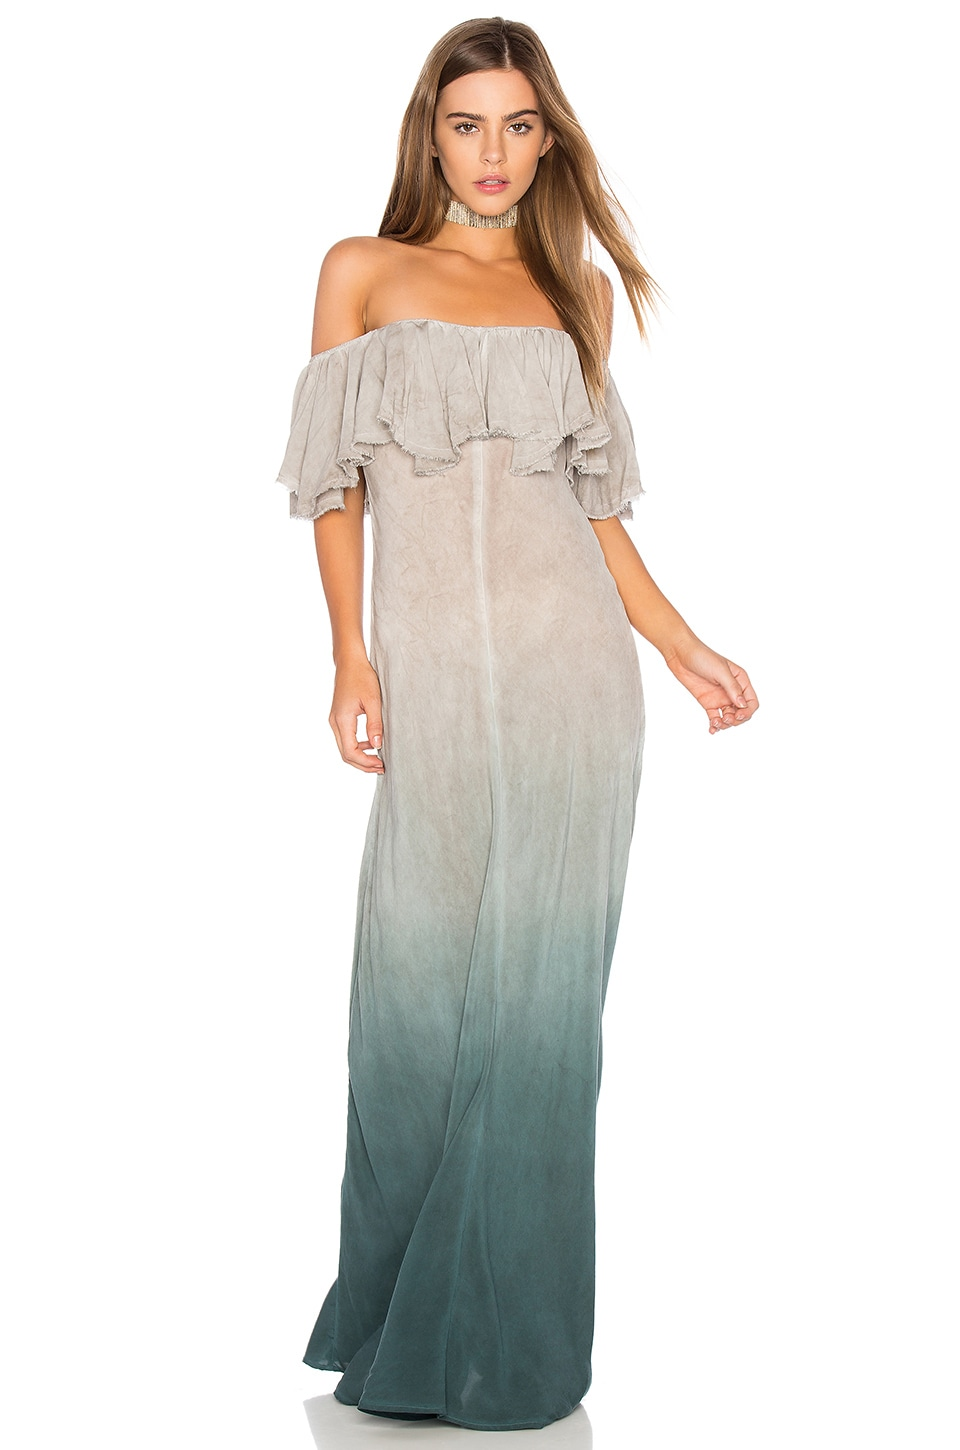 Blue Life Aphrodite Maxi Dress in Antigua Ombre